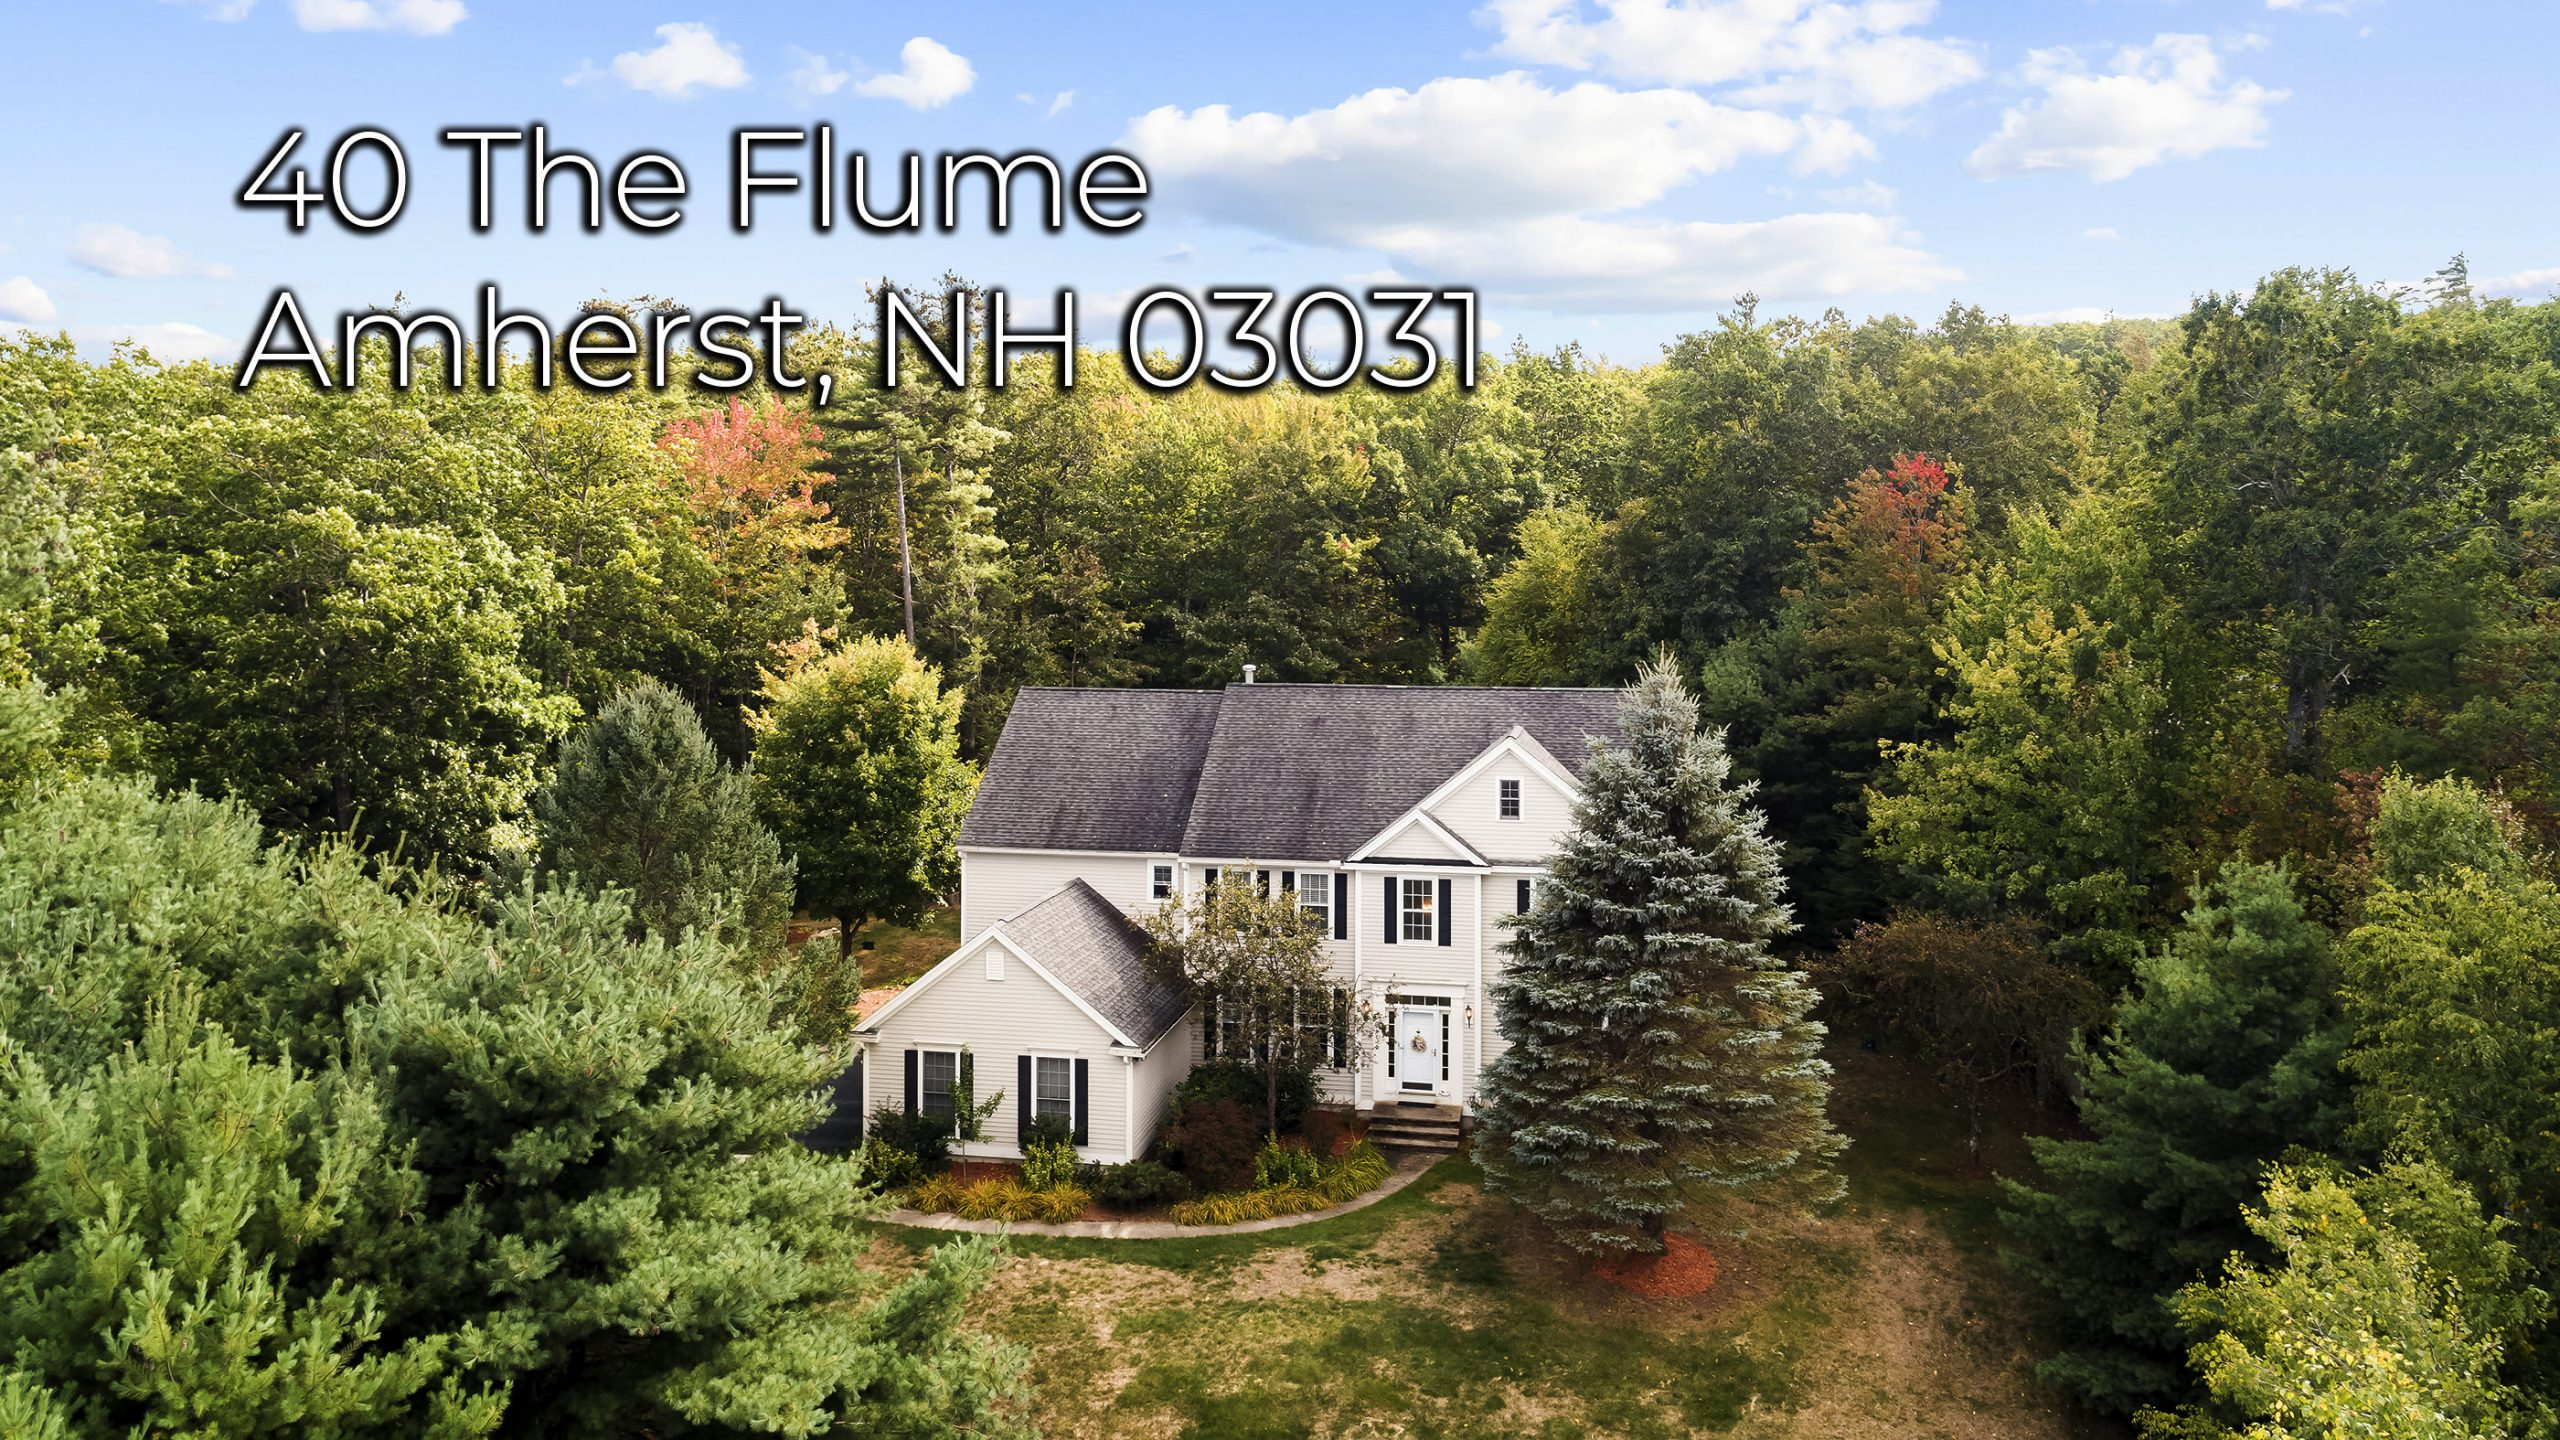 40 The Flume Amherst NH 03031